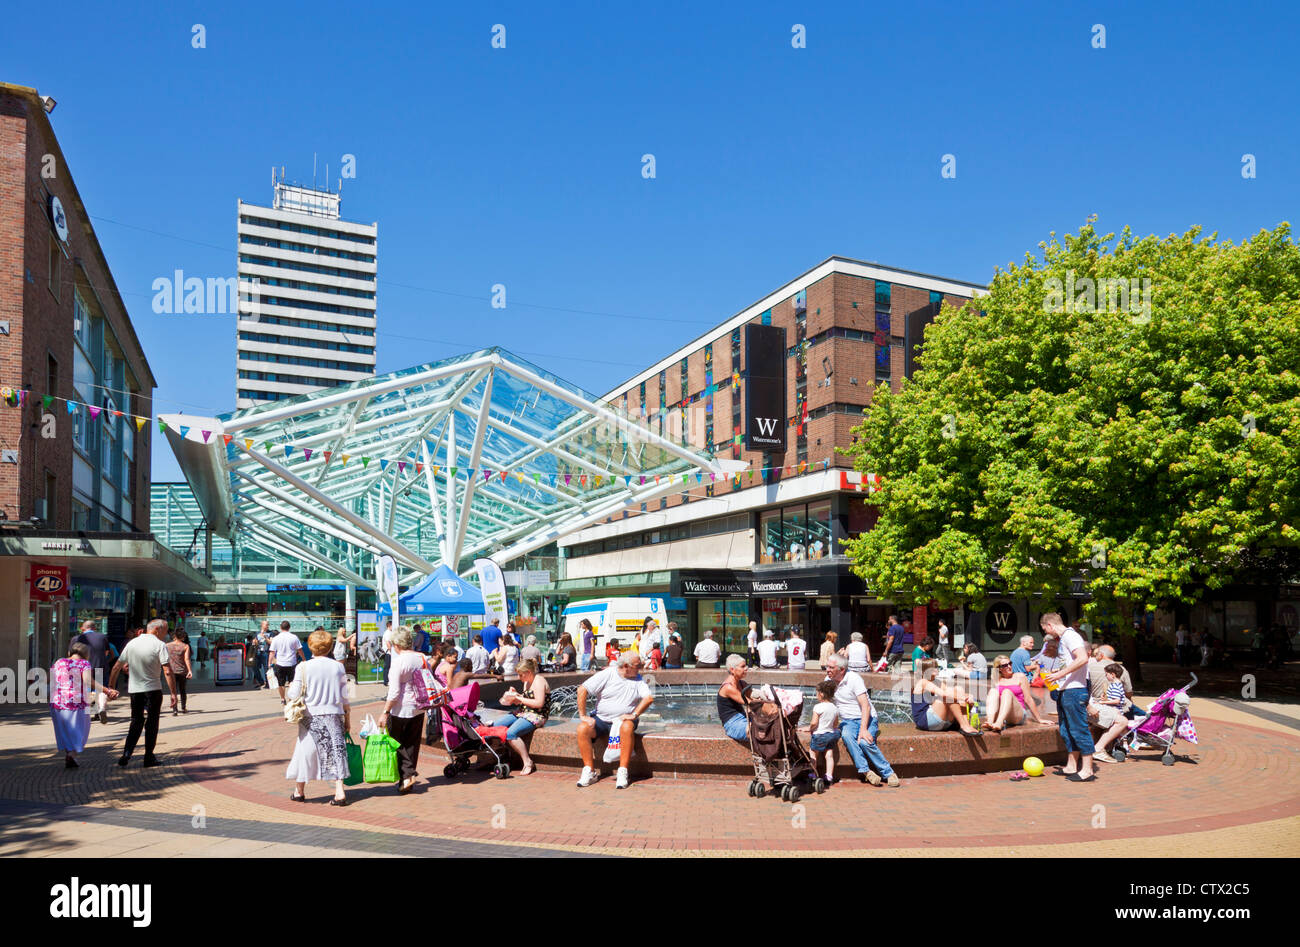 Lower Precinct Shopping Centre Coventry Warwickshire England UK GB EU Europe - Stock Image